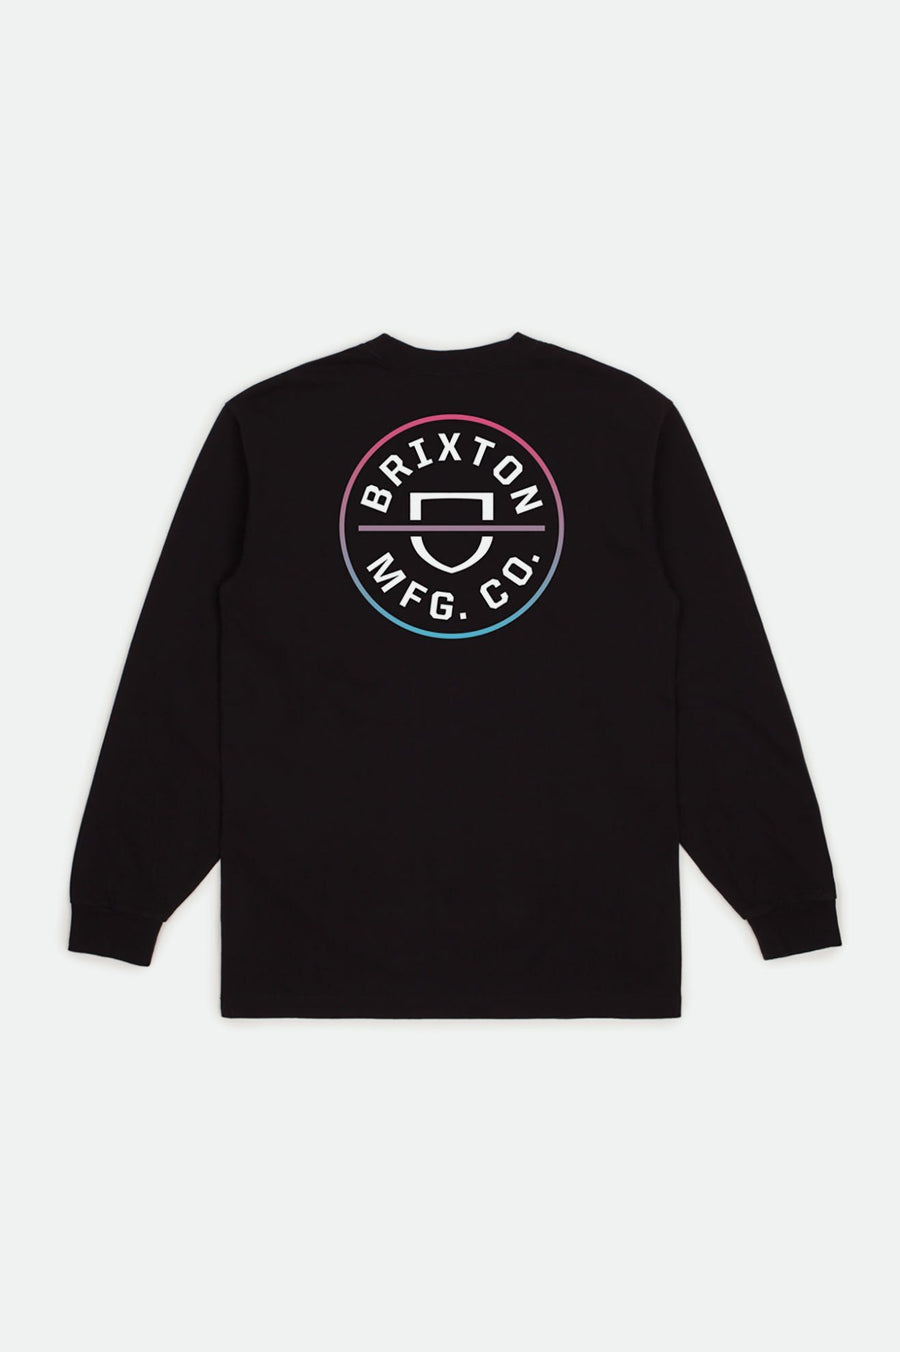 BRIXTON Crest Long Sleeve T-Shirt Black/Light Blue/Pink MENS APPAREL - Men's Long Sleeve T-Shirts Brixton M